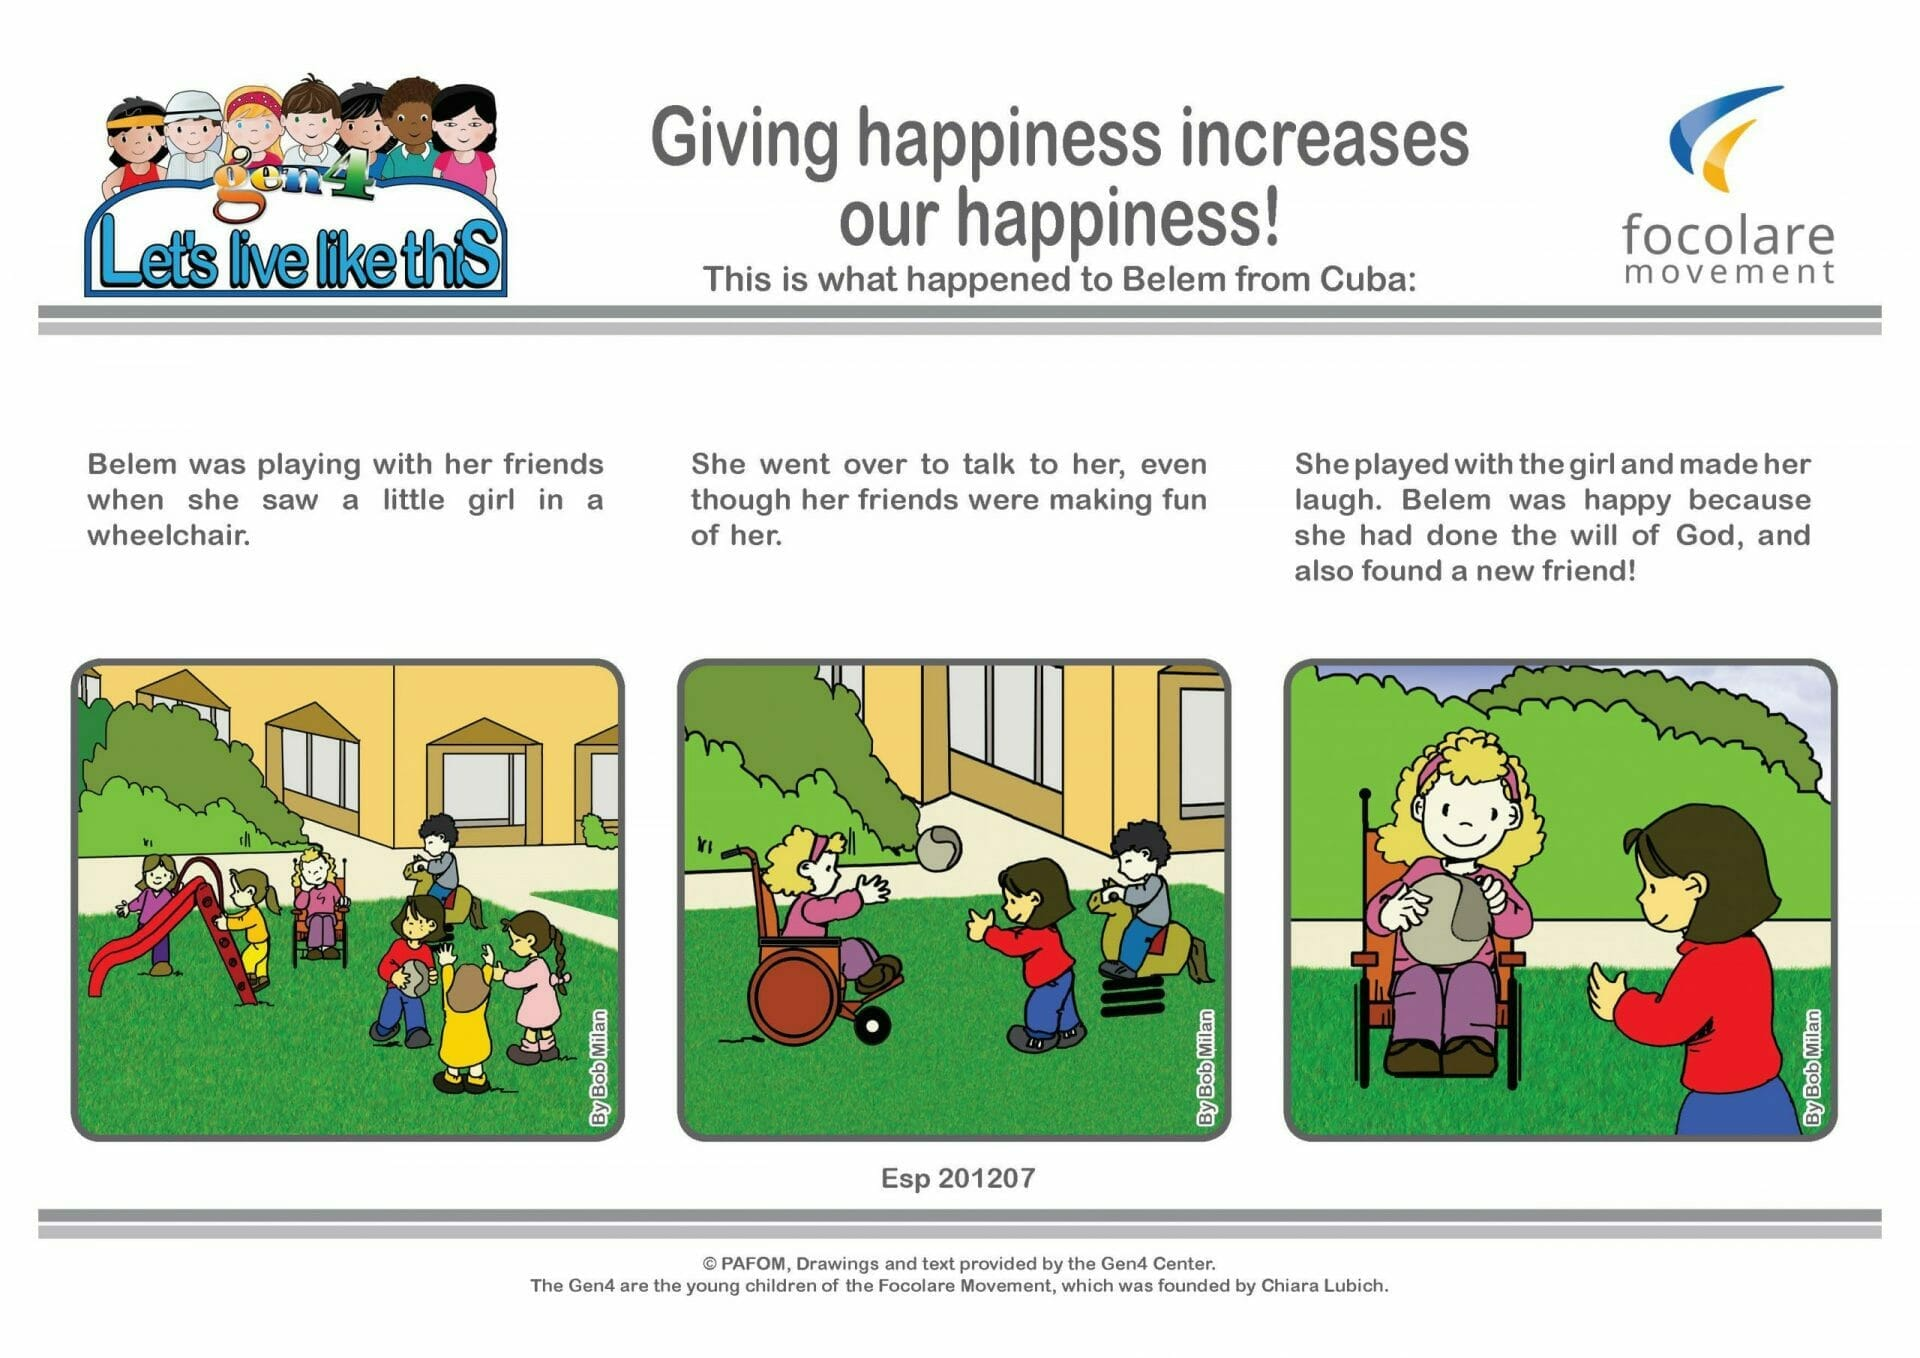 Giving happiness increases our happiness!